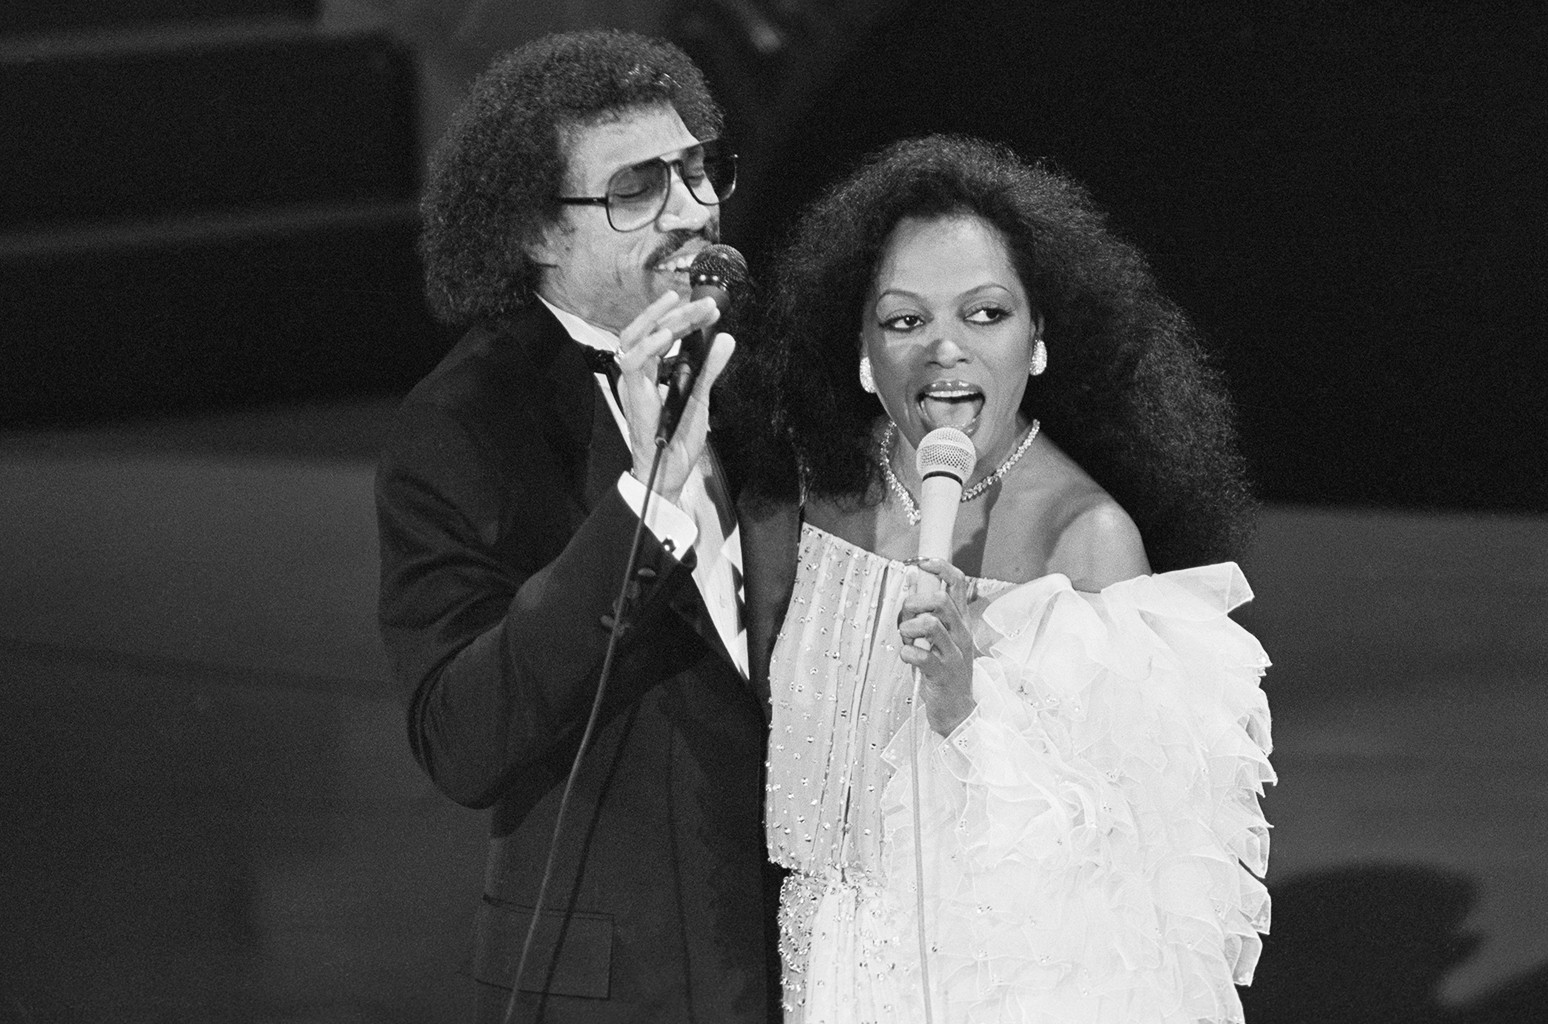 """Lionel Richie and Diana Ross perform """"Endless Love"""" at the 54th Annual Academy Awards."""